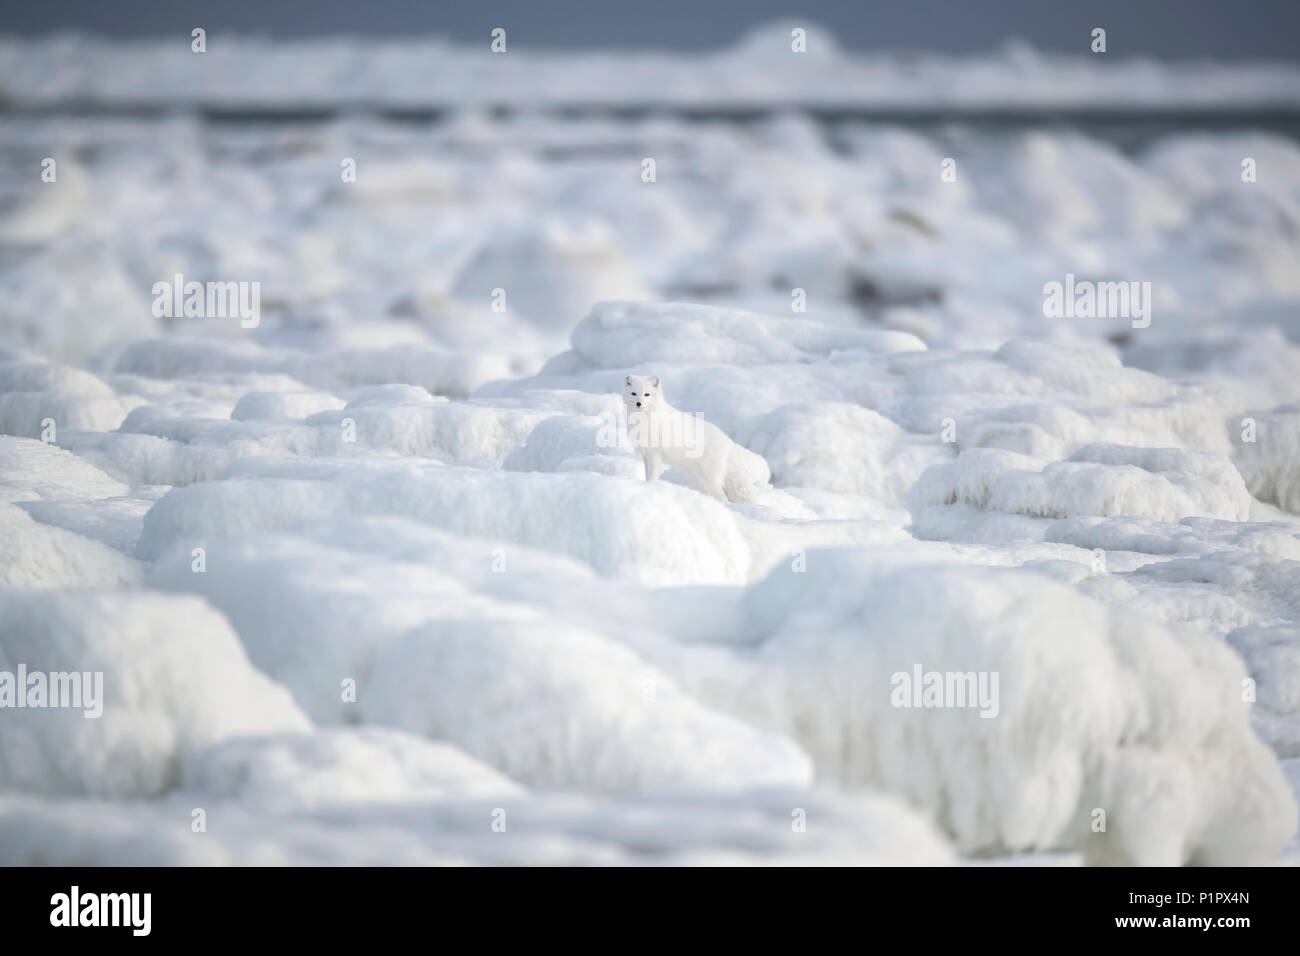 Arctic fox (Vulpes lagopus) walking through the ice chunks on Hudson Bay; Churchill, Manitoba, Canada - Stock Image